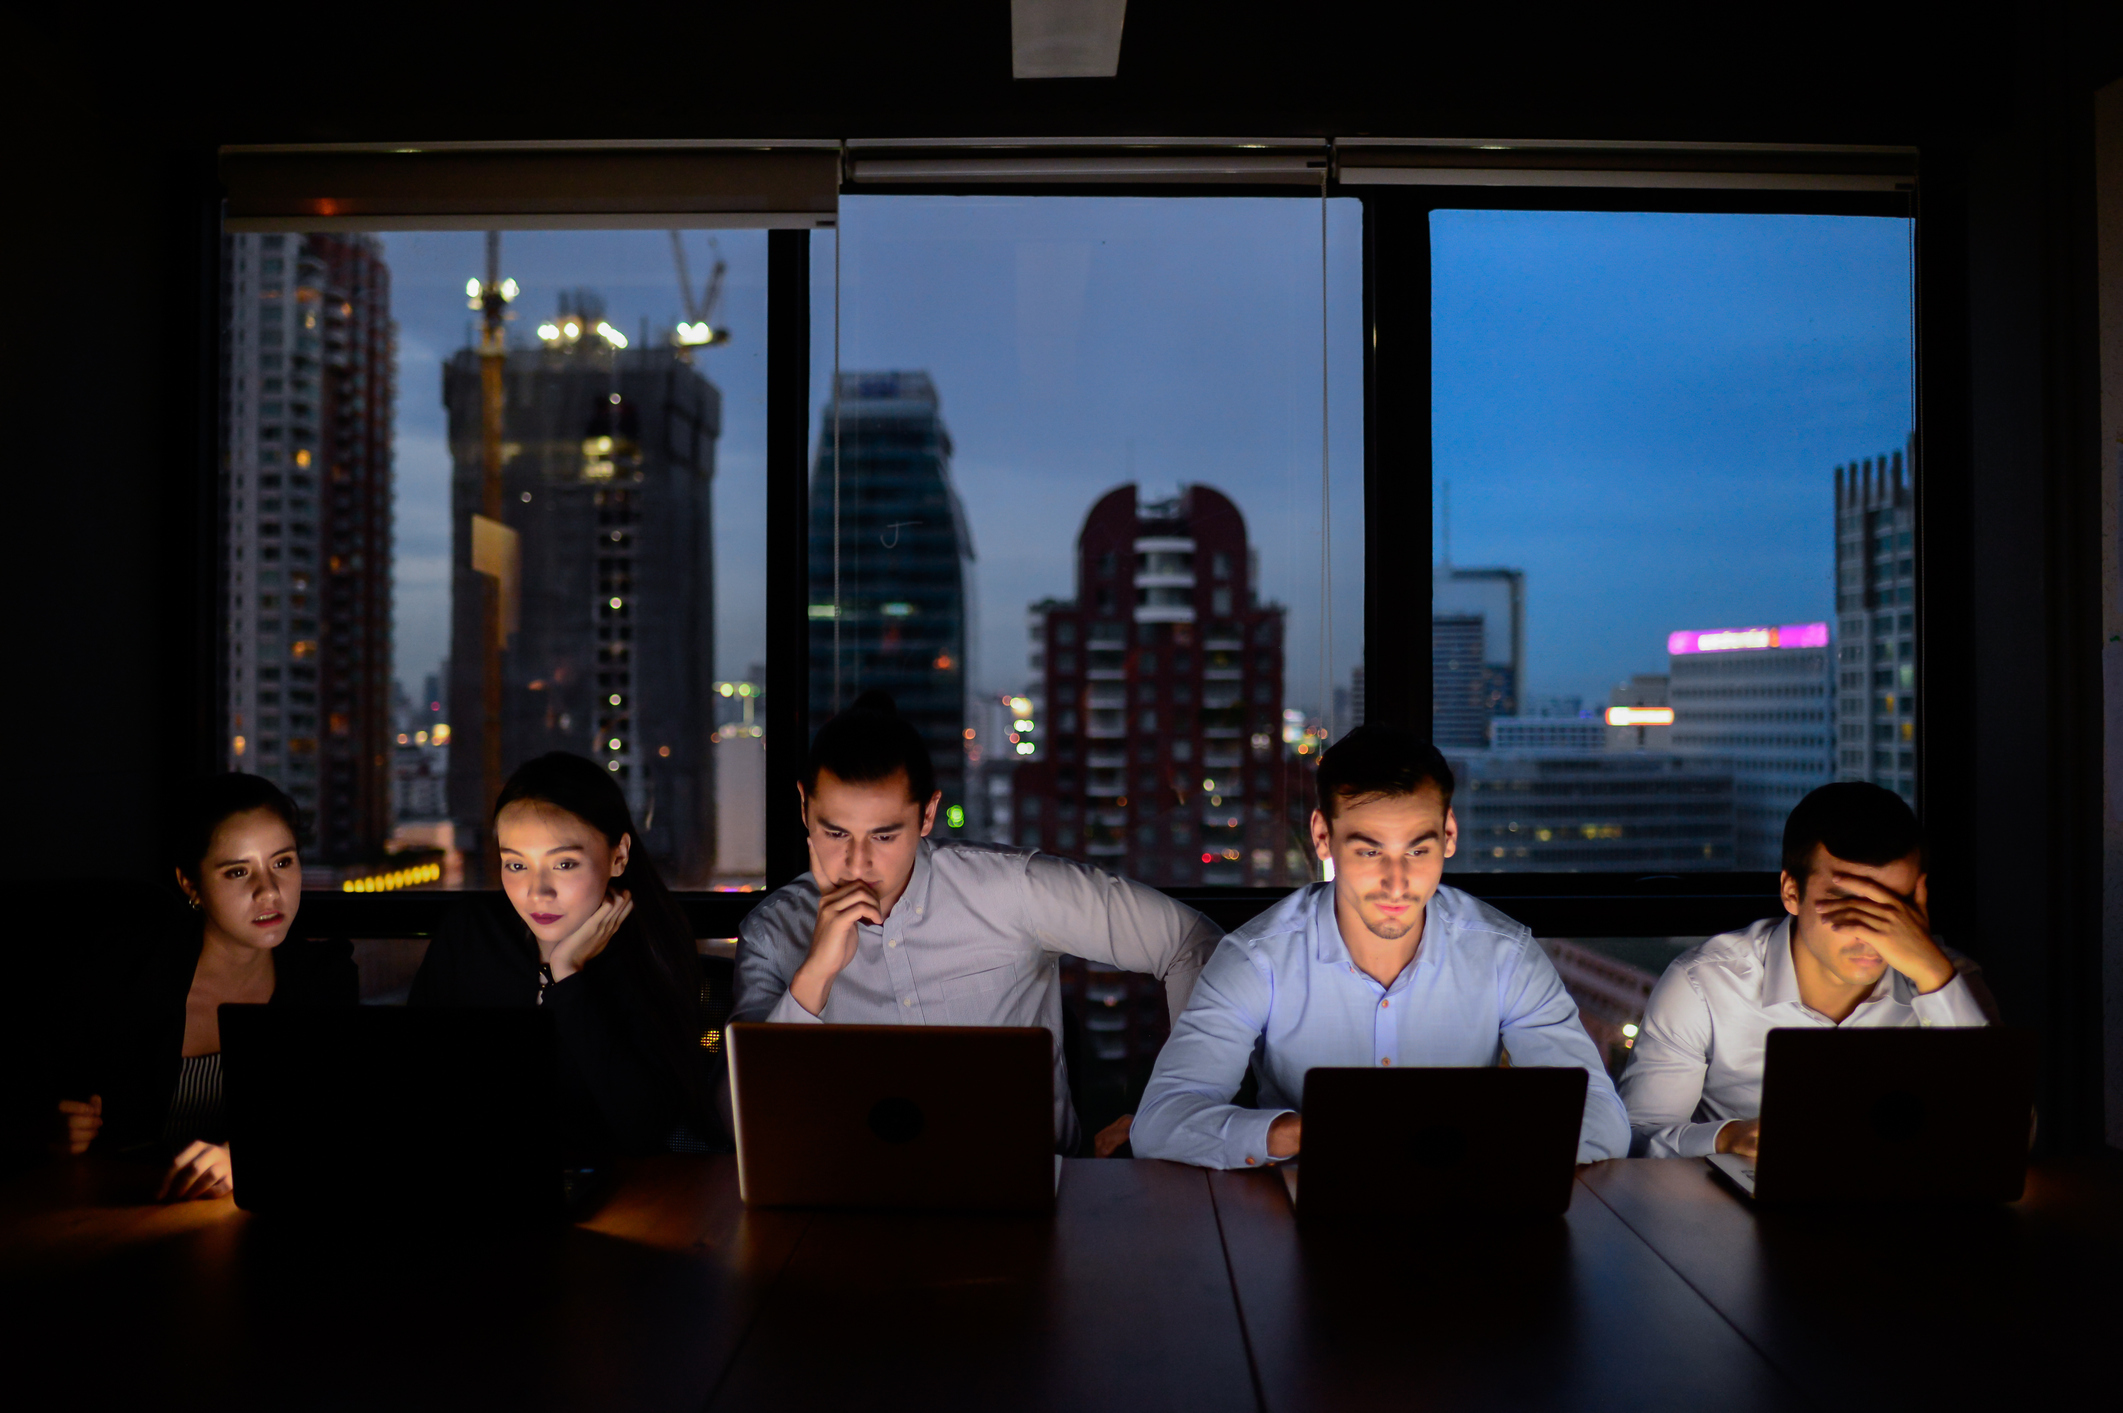 Many workers would hope to start their day earlier, so they are able to leave before 5pm. (Getty)